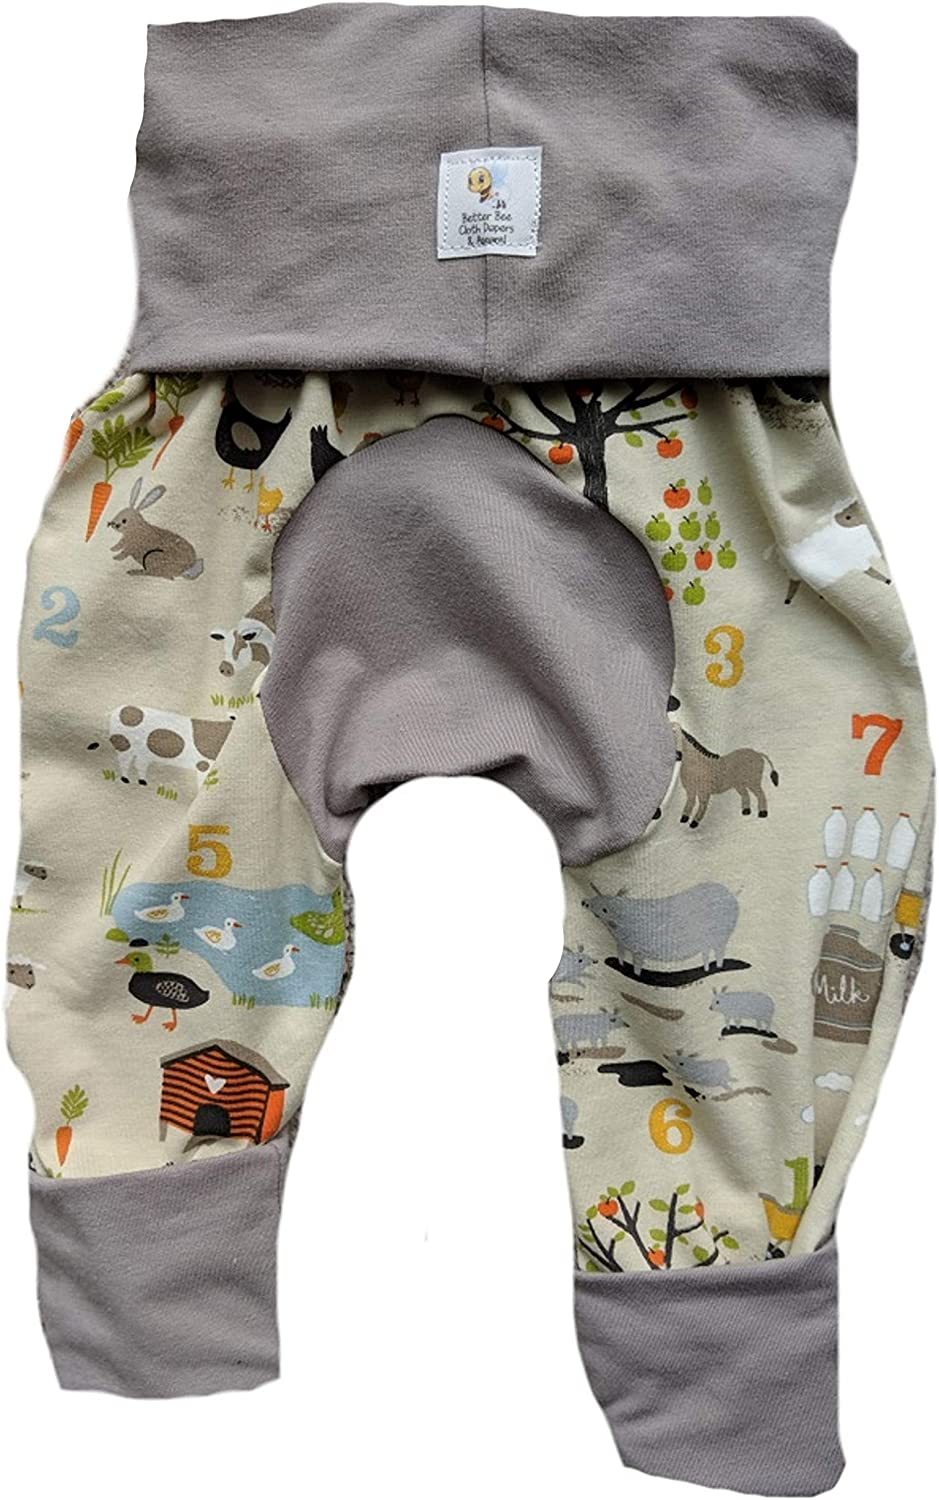 Maxaloones Safety and trust Grow with Finally popular brand Me Size Life Pants Farm